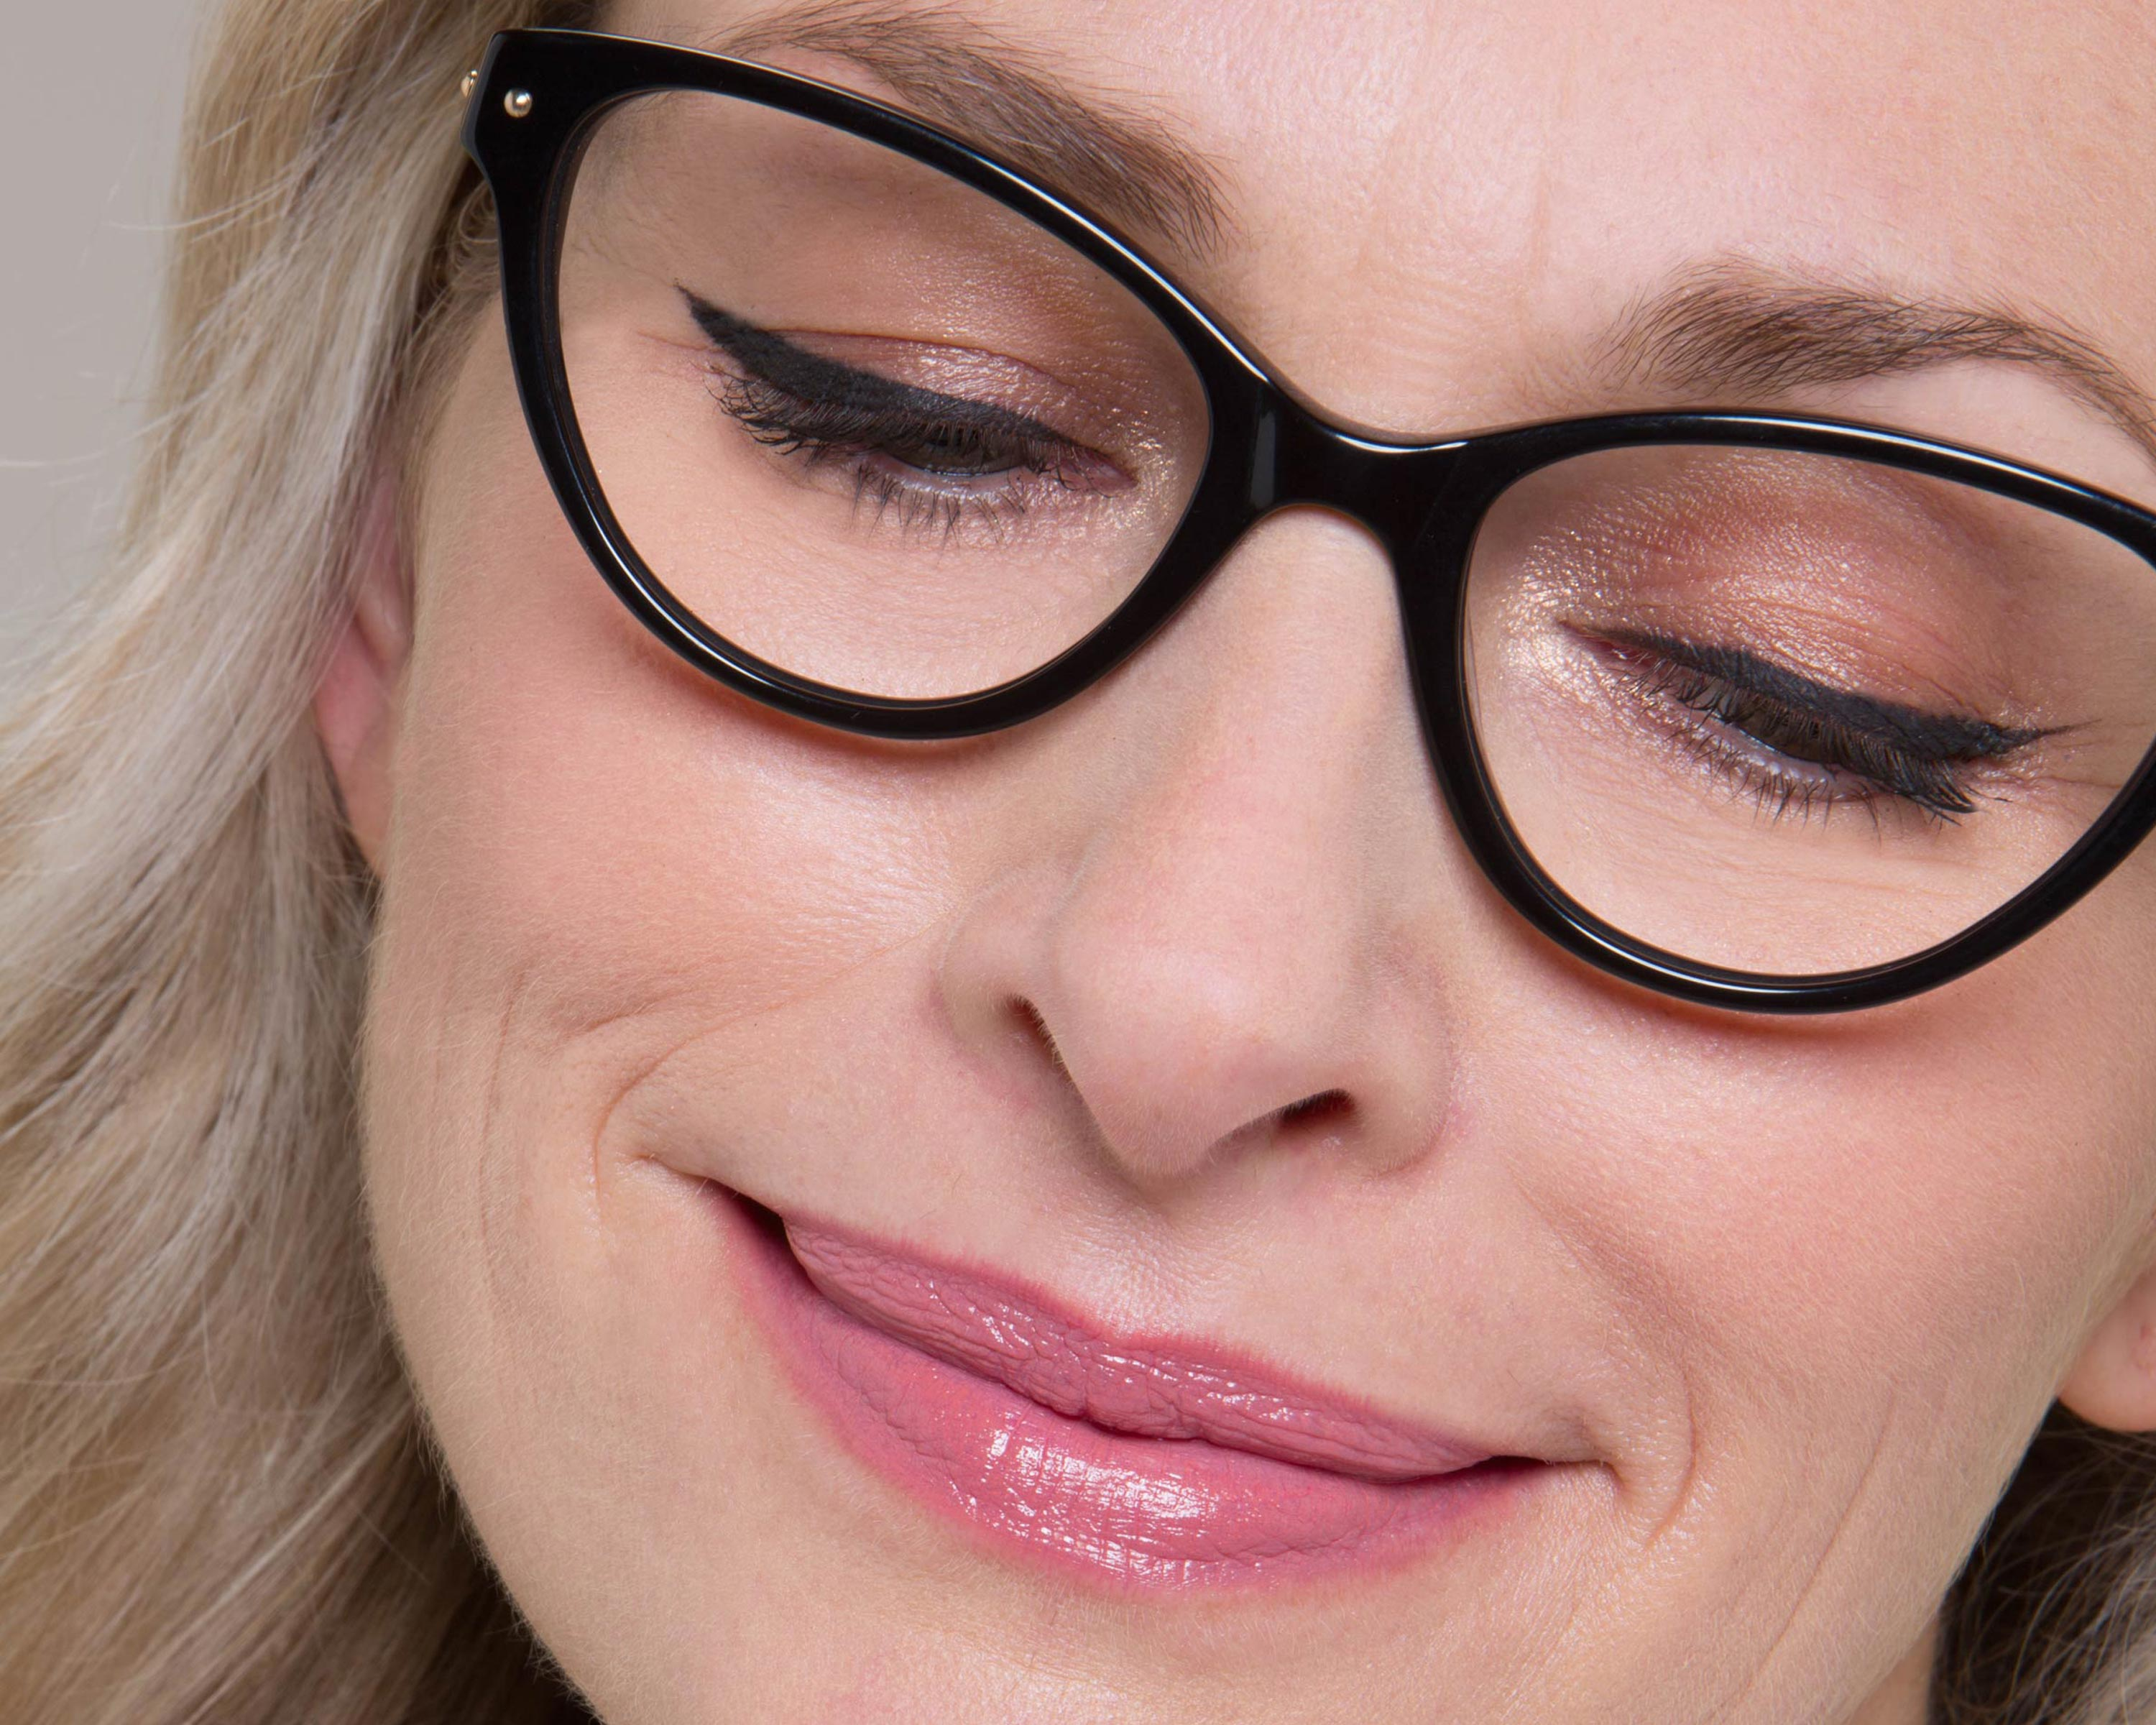 Wearing Makeup With Glasses: 6 Areas to FocusOn pics